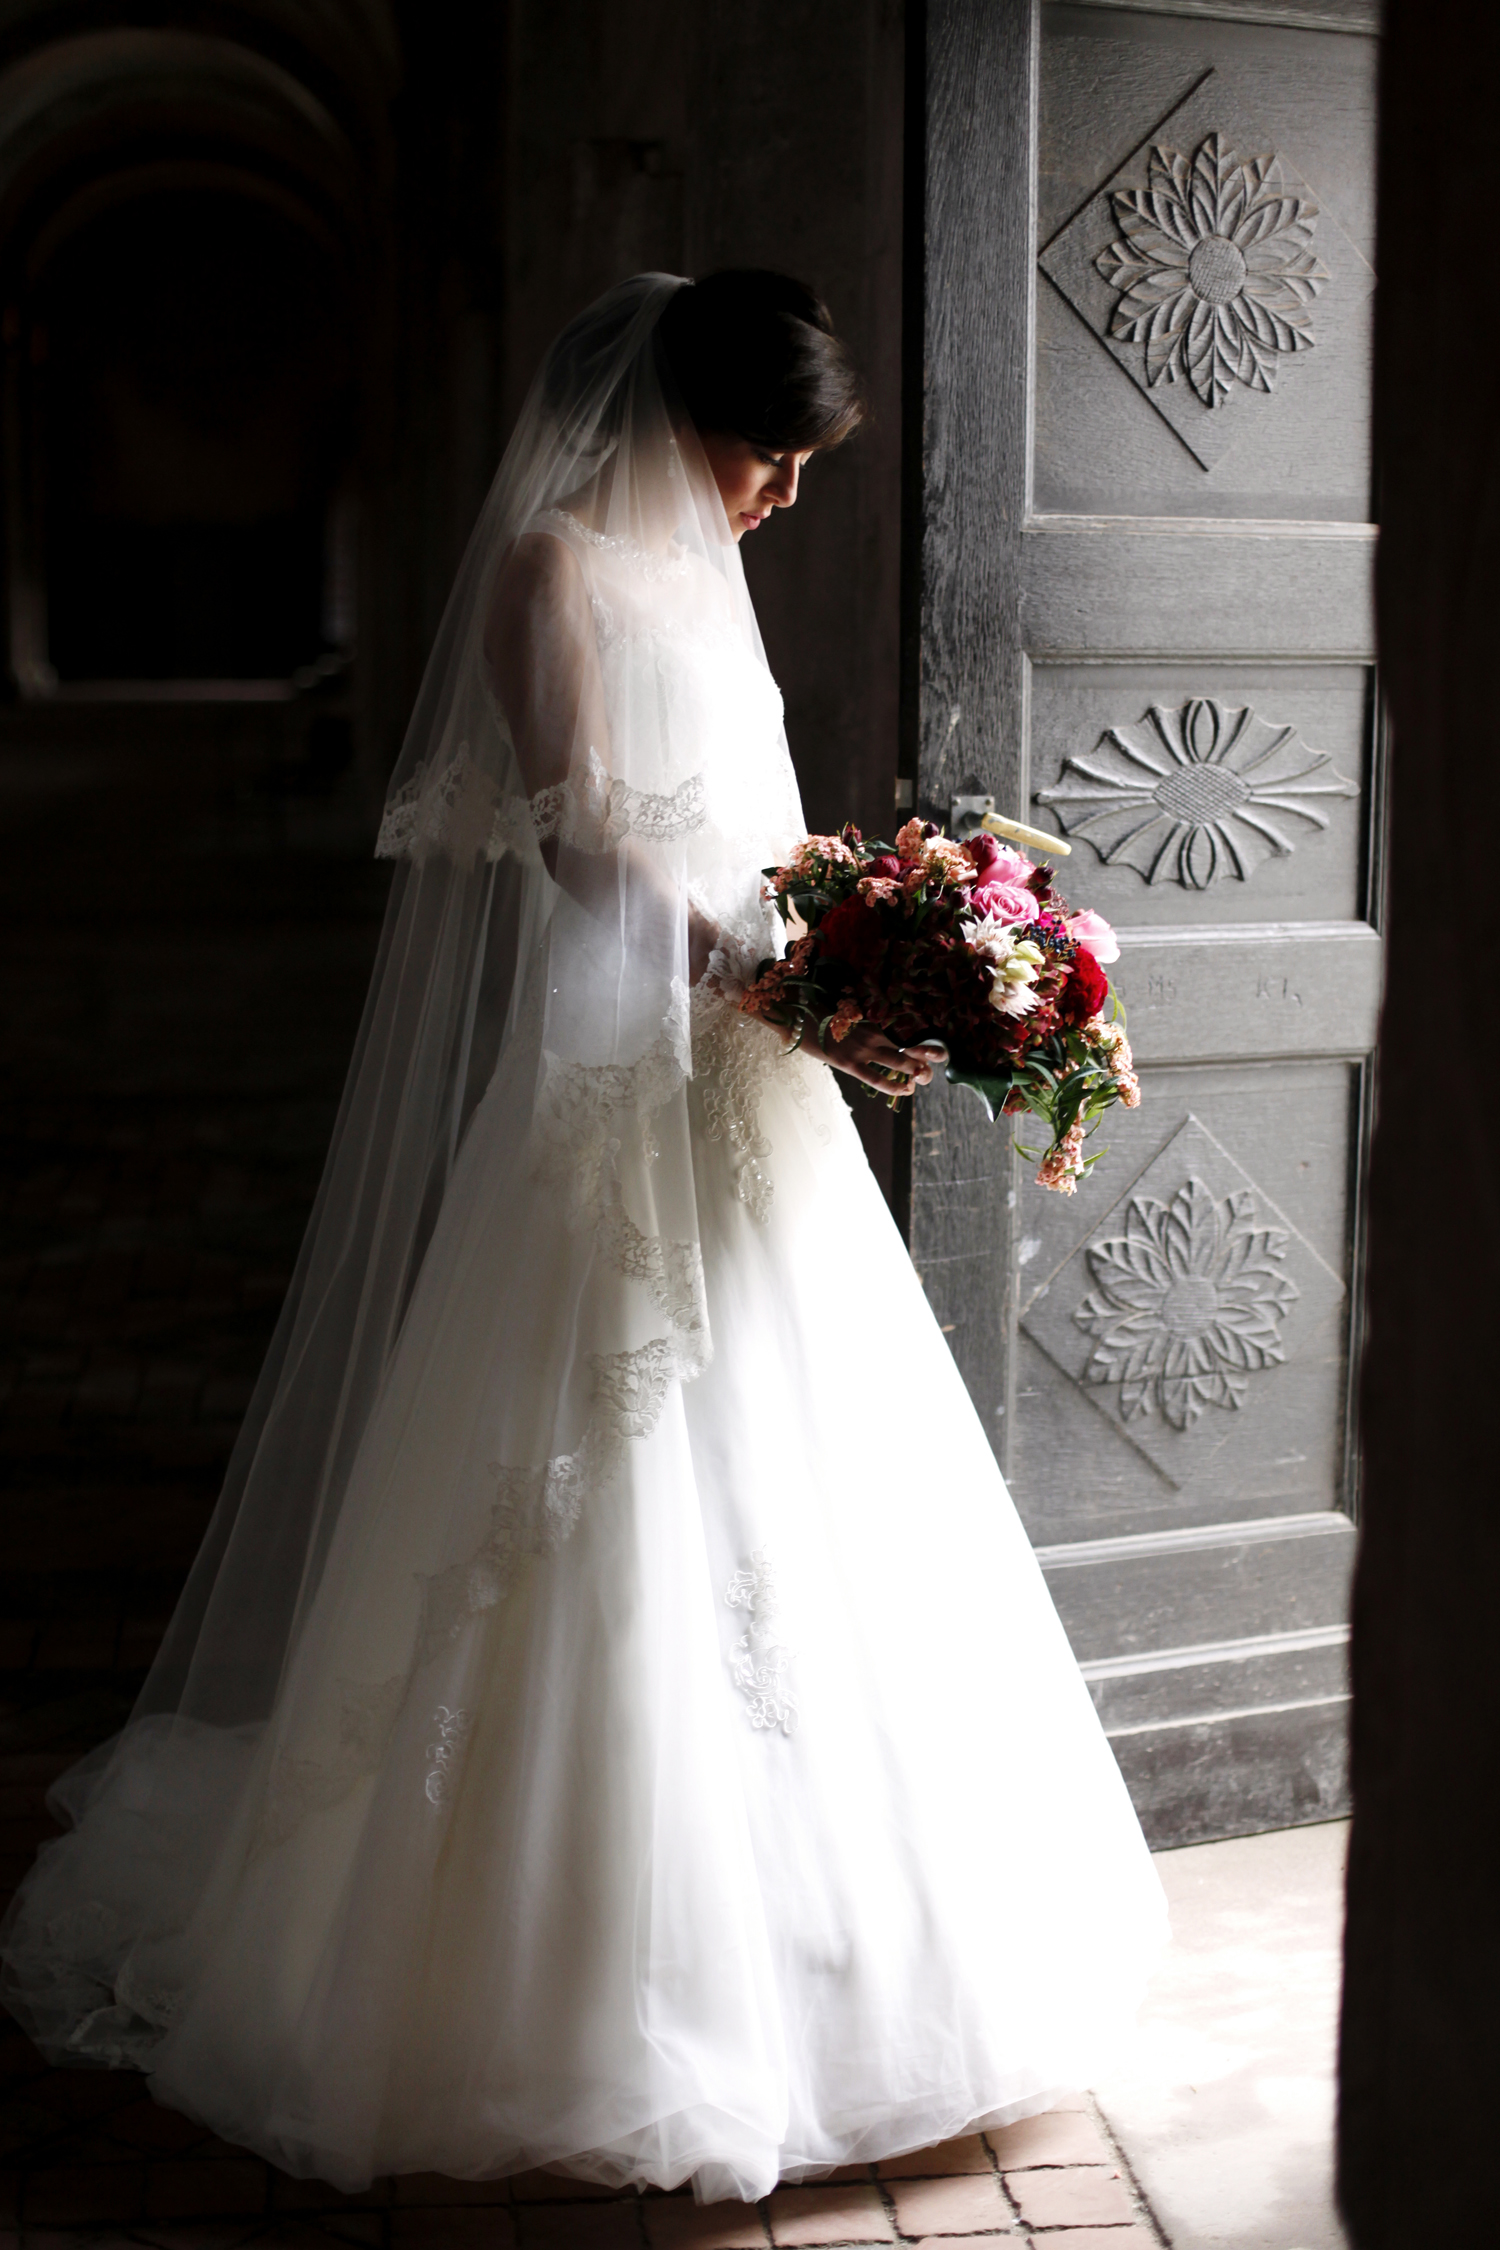 bride and bouquet in front of historic monastery doors for Wedding Style Shoot in Kloster Eberbach, Germany, designed by Flora Nova Design, Seattle